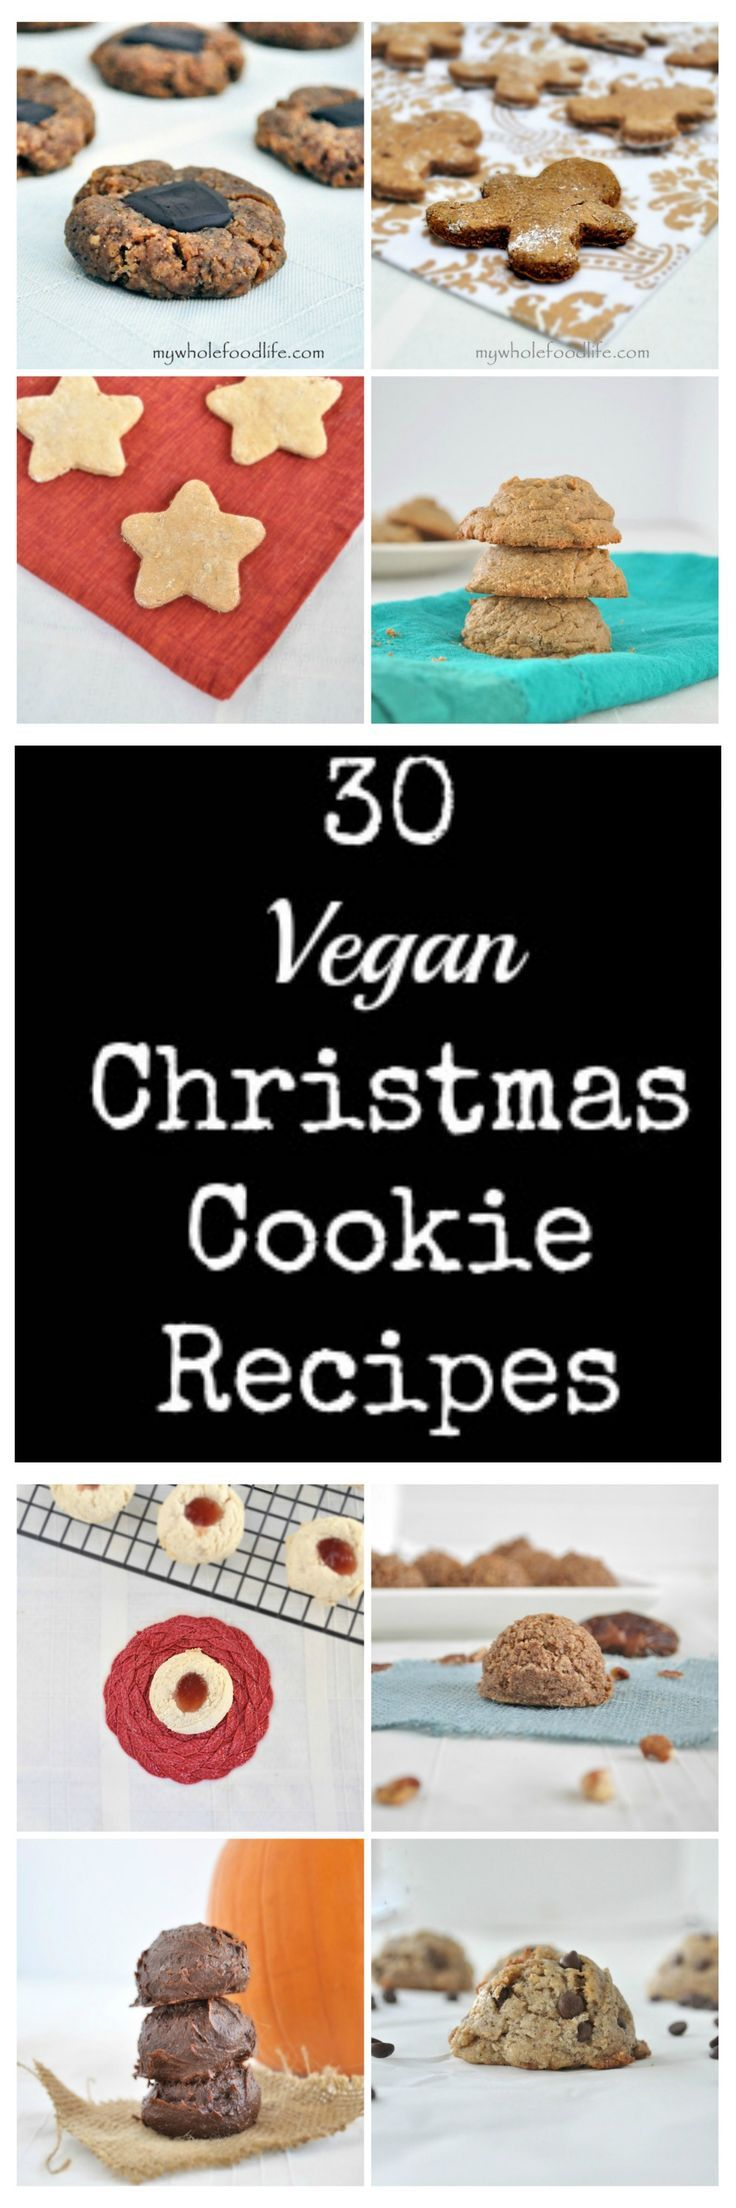 30 Vegan Holiday Cookies to celebrate with! You will not miss the butter and eggs in these delicious recipes! #vegan